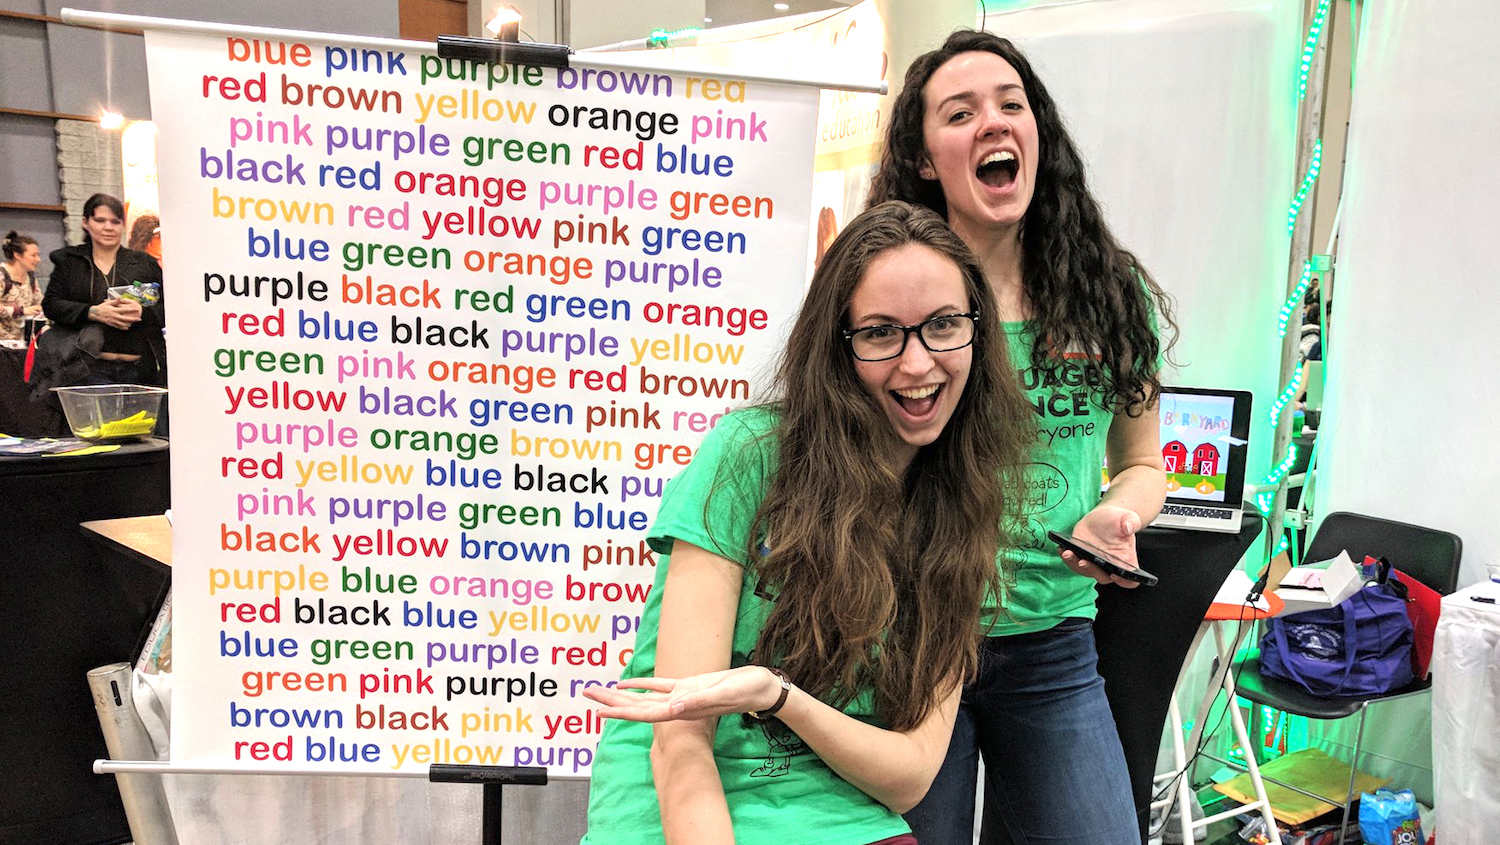 Hanna Muller and Jackie Nelligan having fun while explaining the Stroop Test.